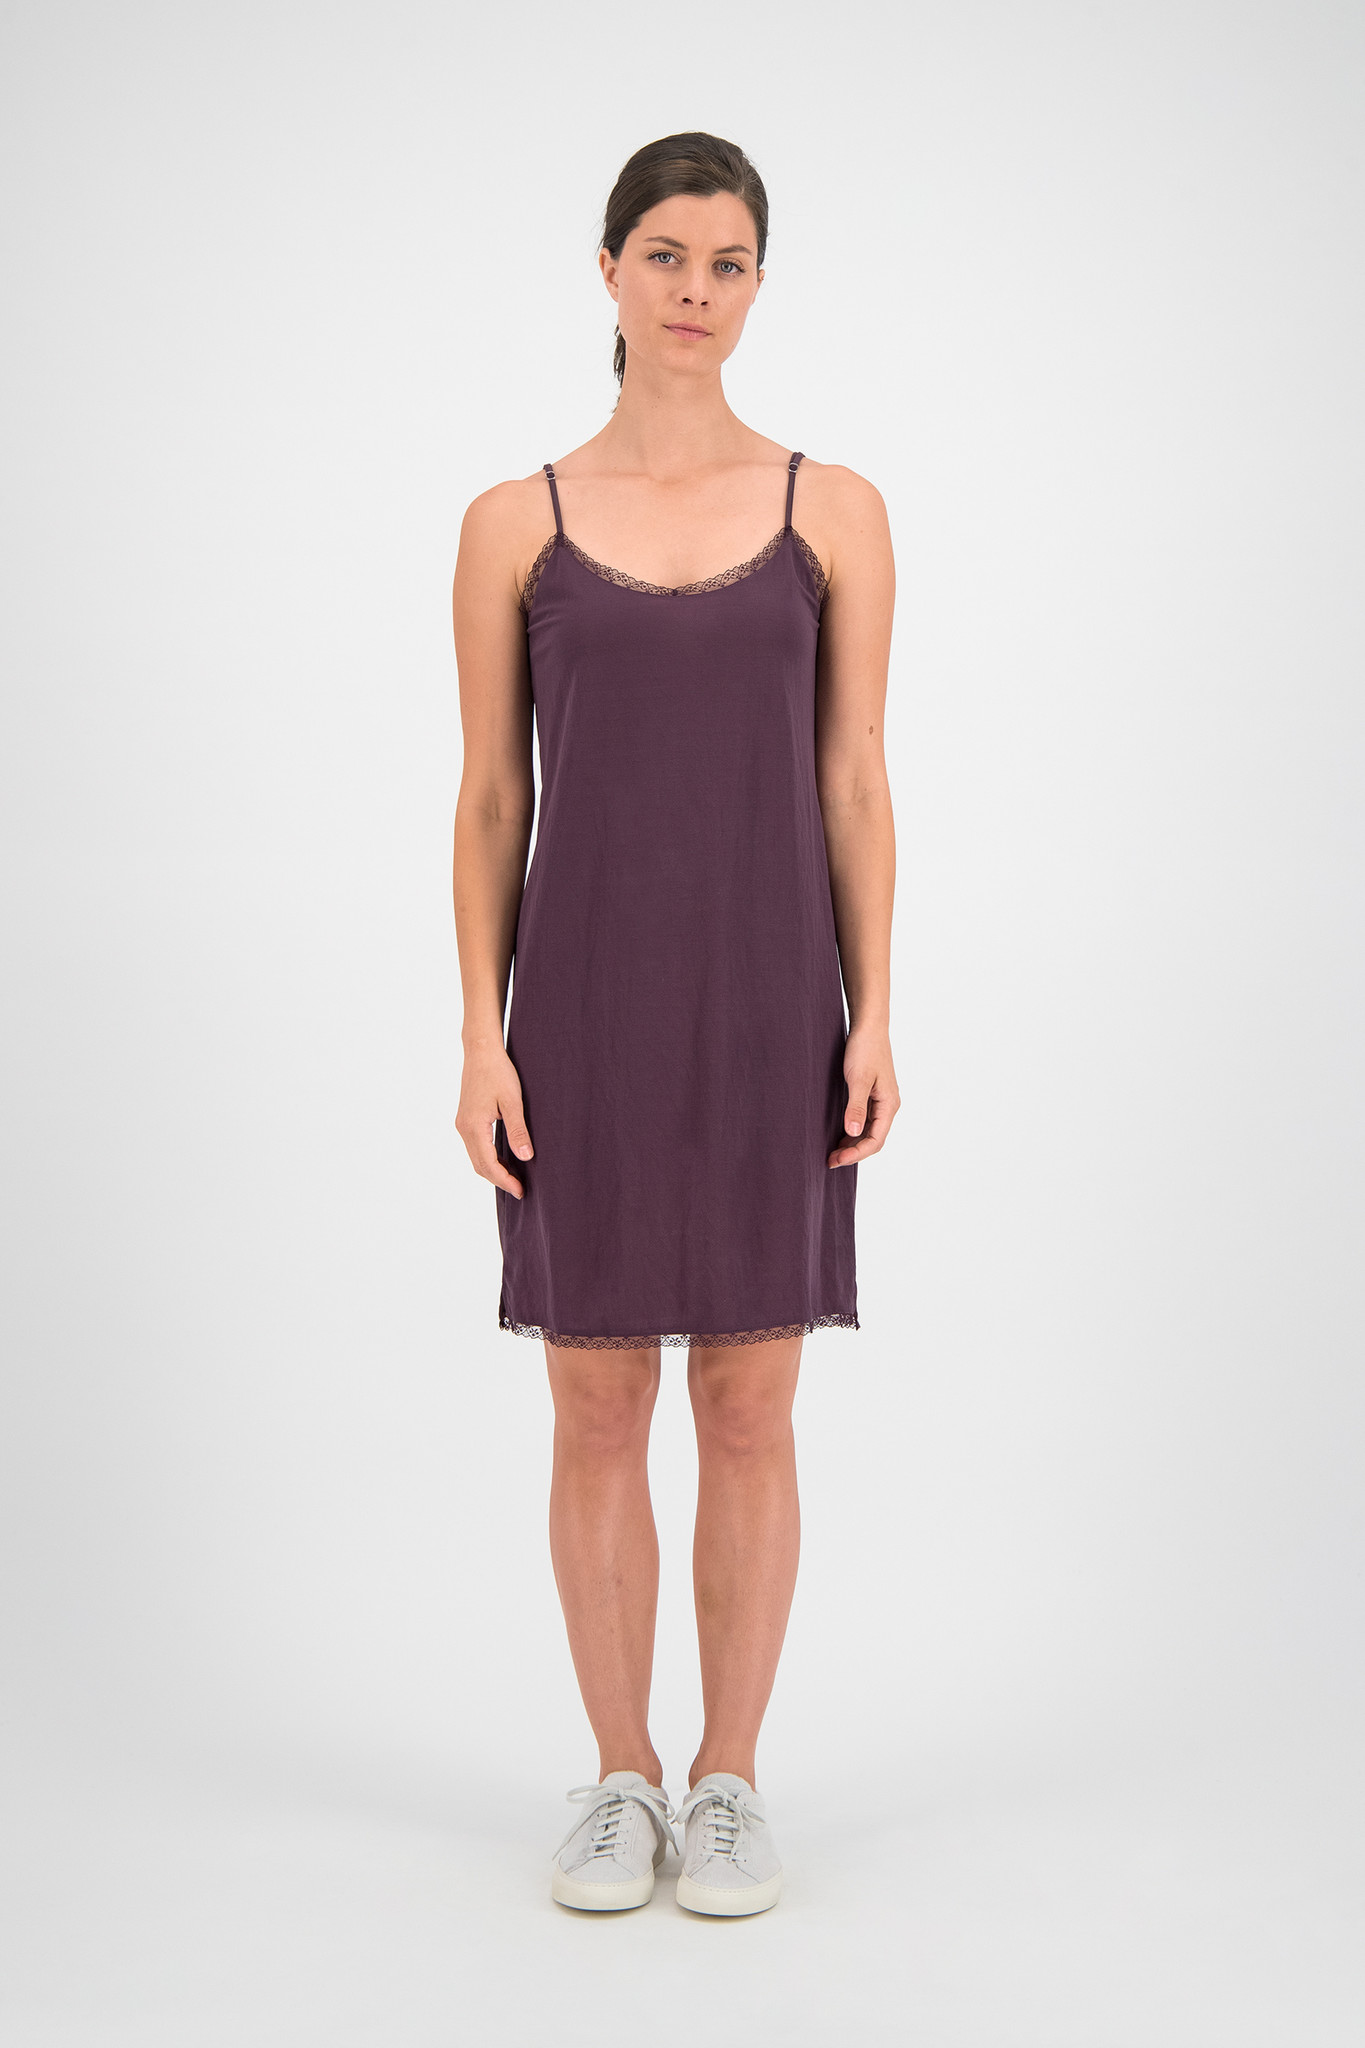 SYLVER Crêpe Stretch Slip Dress - Choco Wine